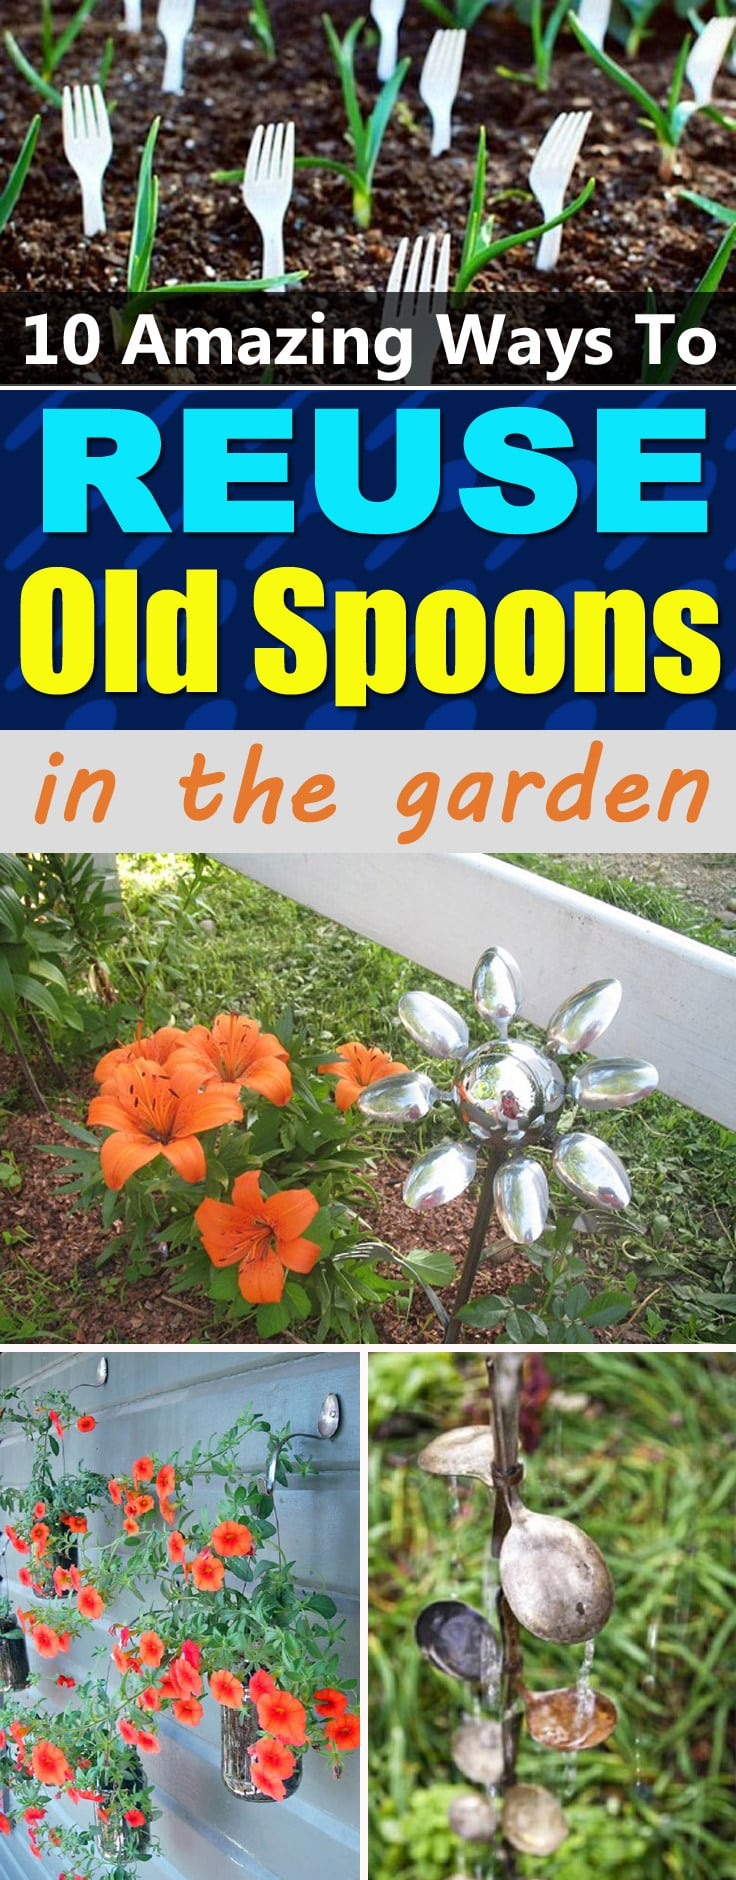 Reuse old spoons and forks in the garden following our 10 DIY Spoon Crafts and Ideas available with the tutorials!